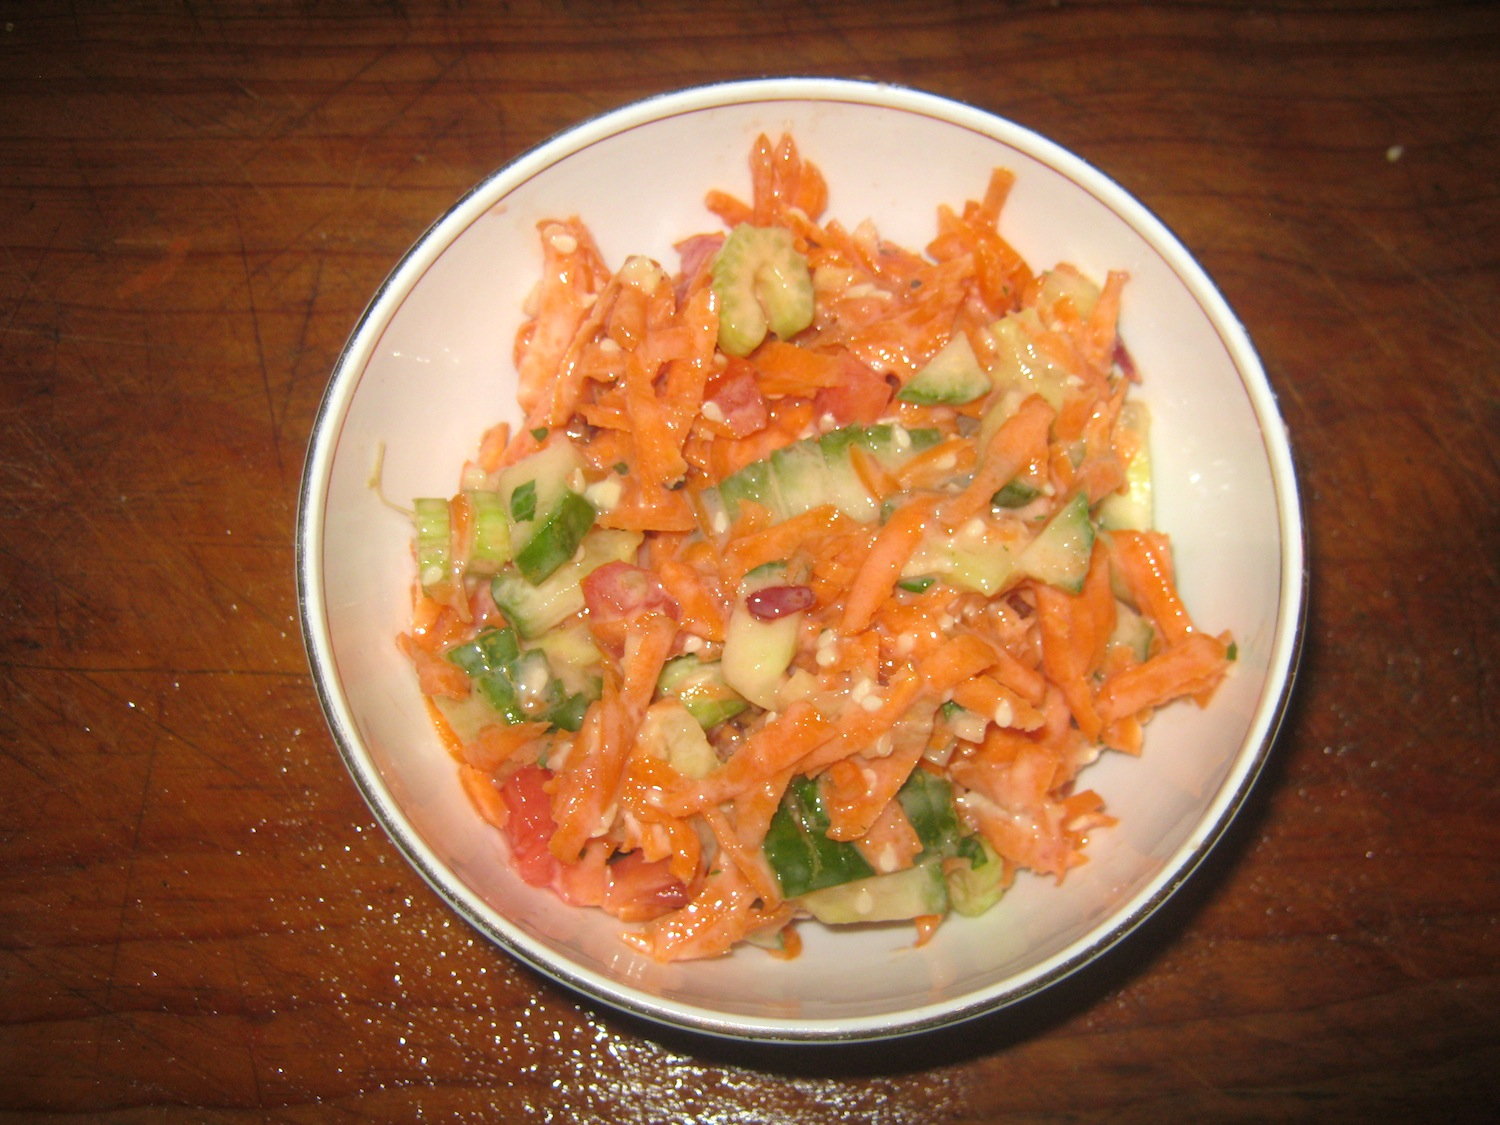 Carrot salad with chili and yogurt mint sauce in white bowl